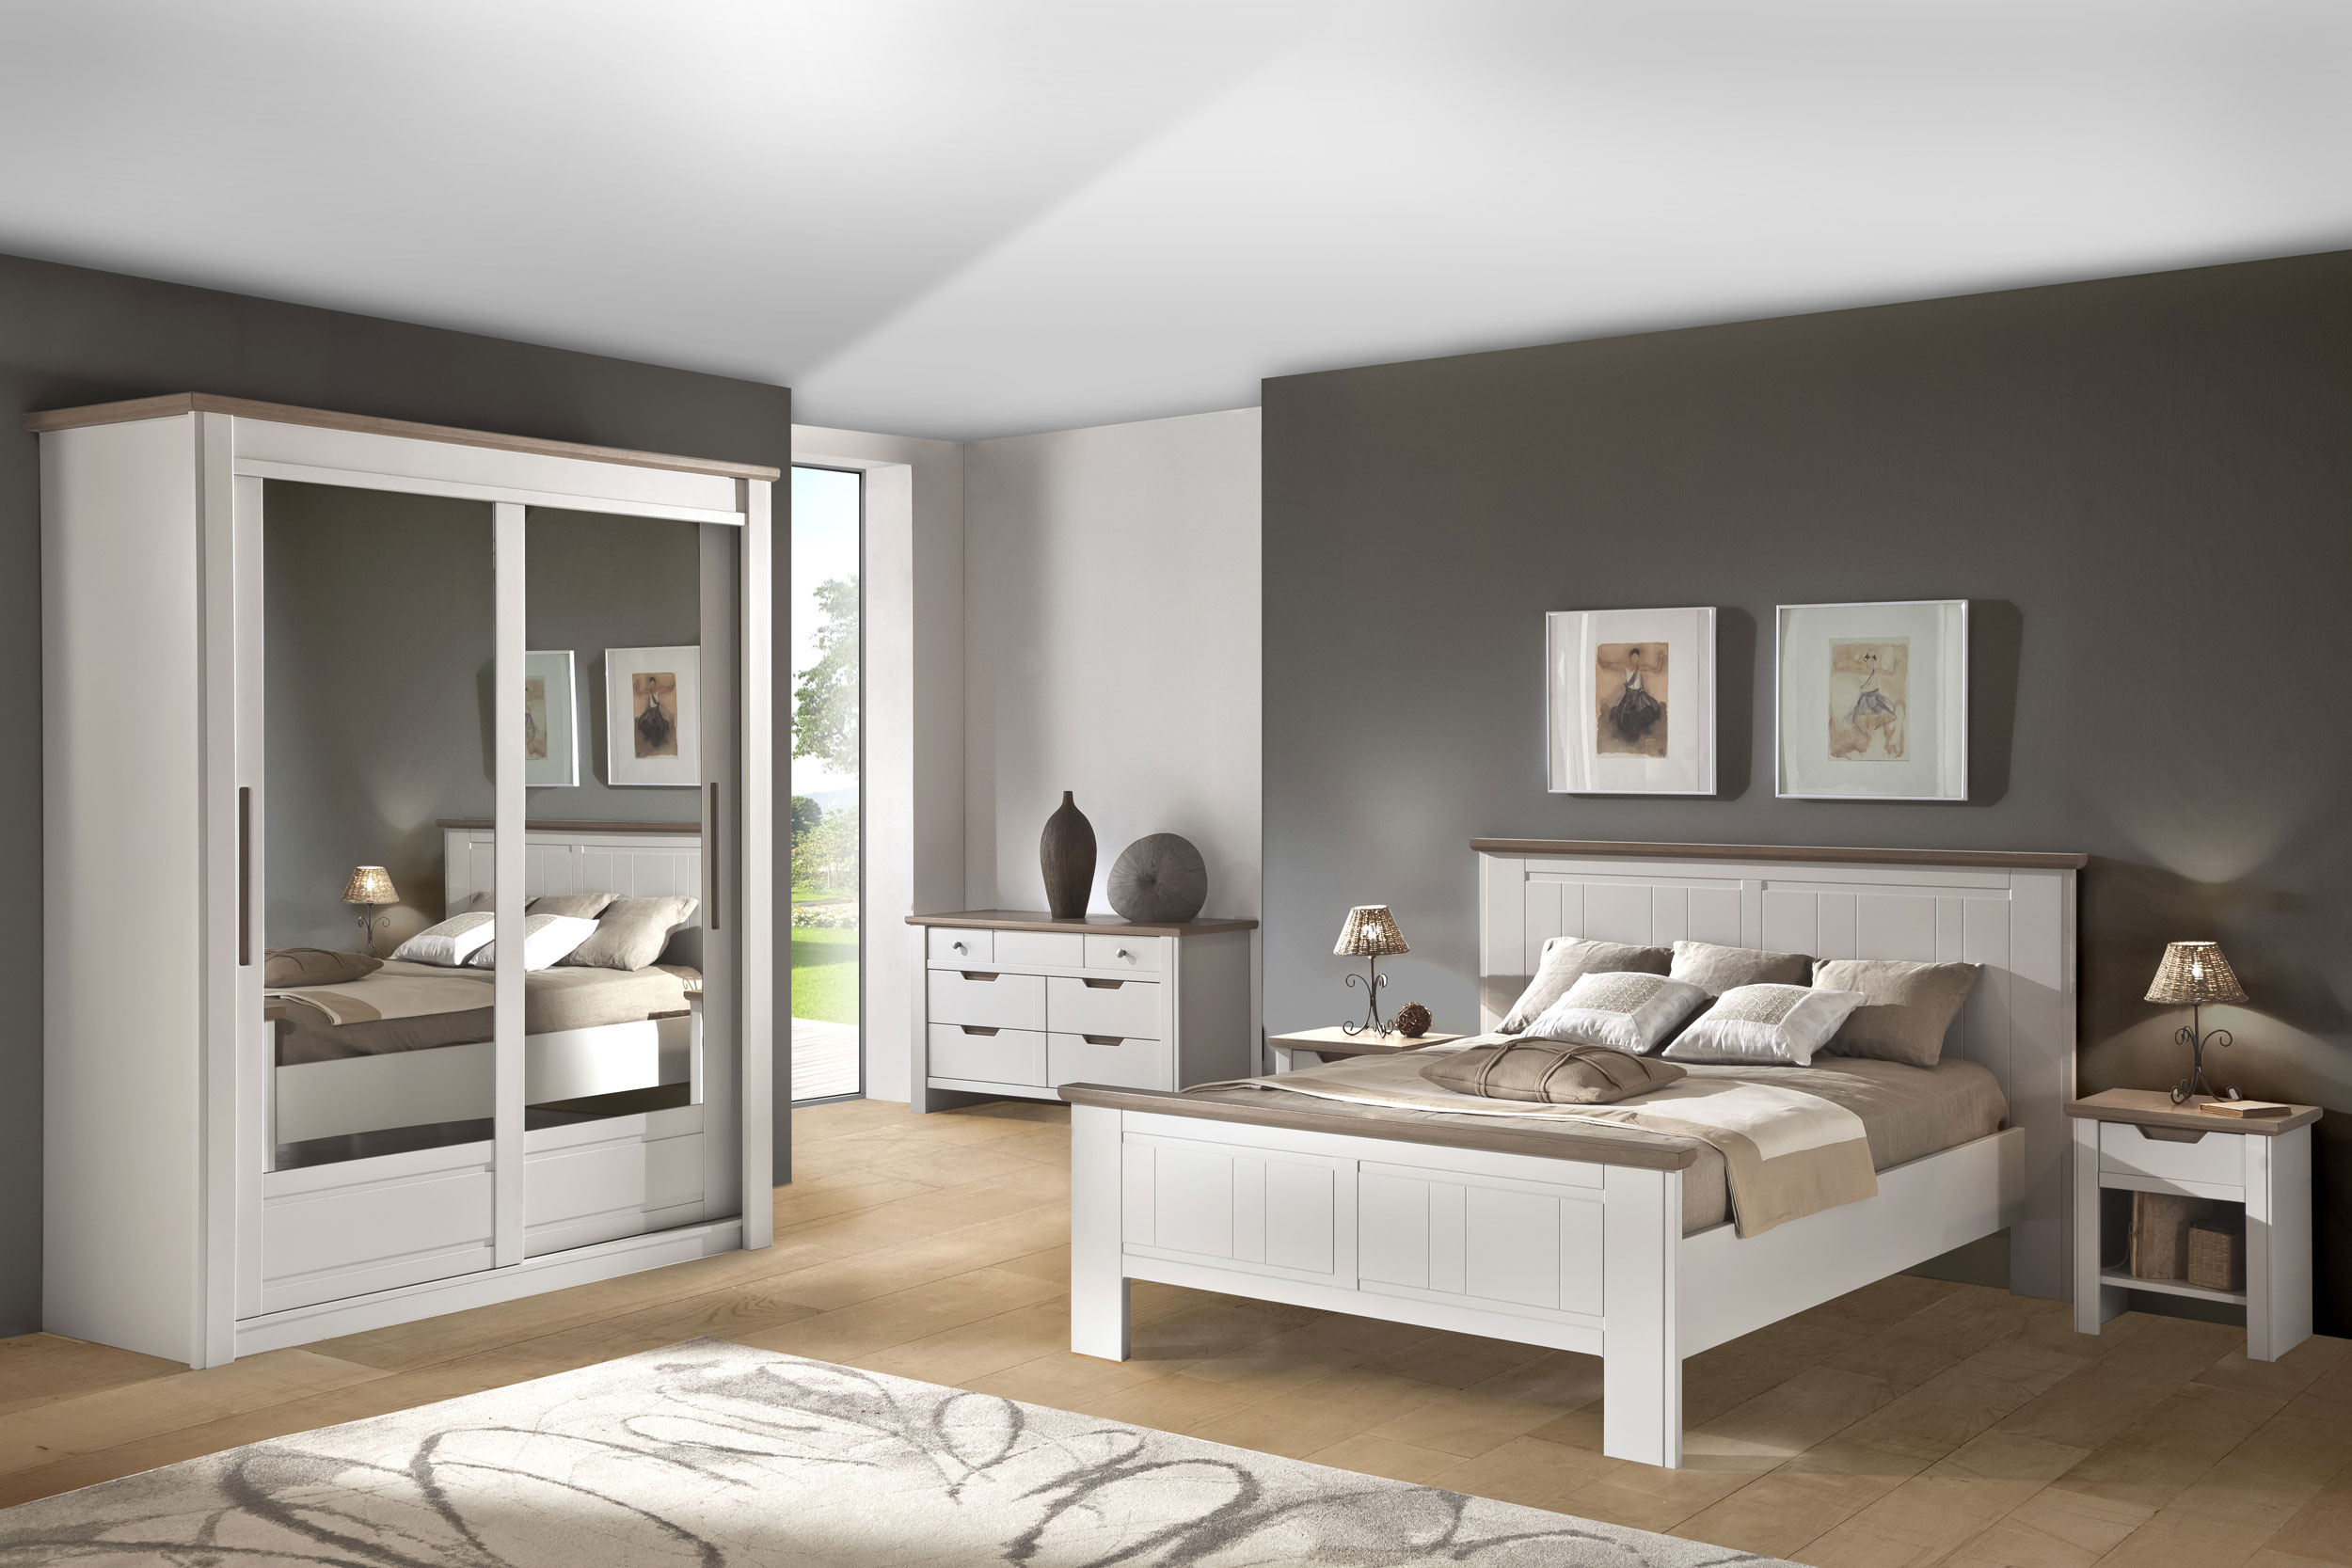 d coration chambre meuble bois exemples d 39 am nagements. Black Bedroom Furniture Sets. Home Design Ideas